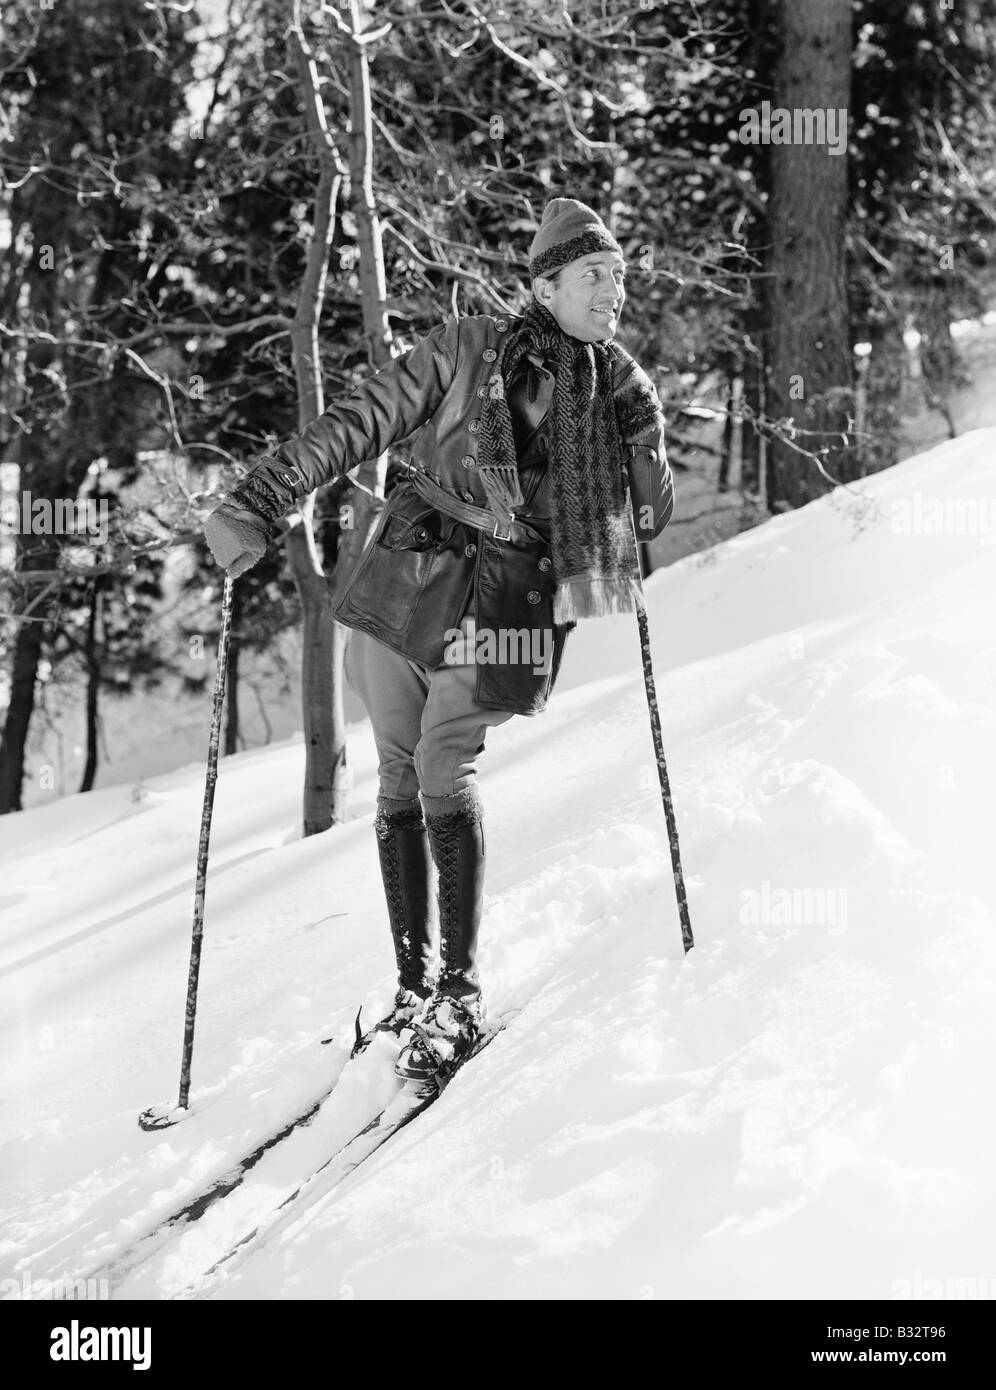 Male skier skiing downhill - Stock Image